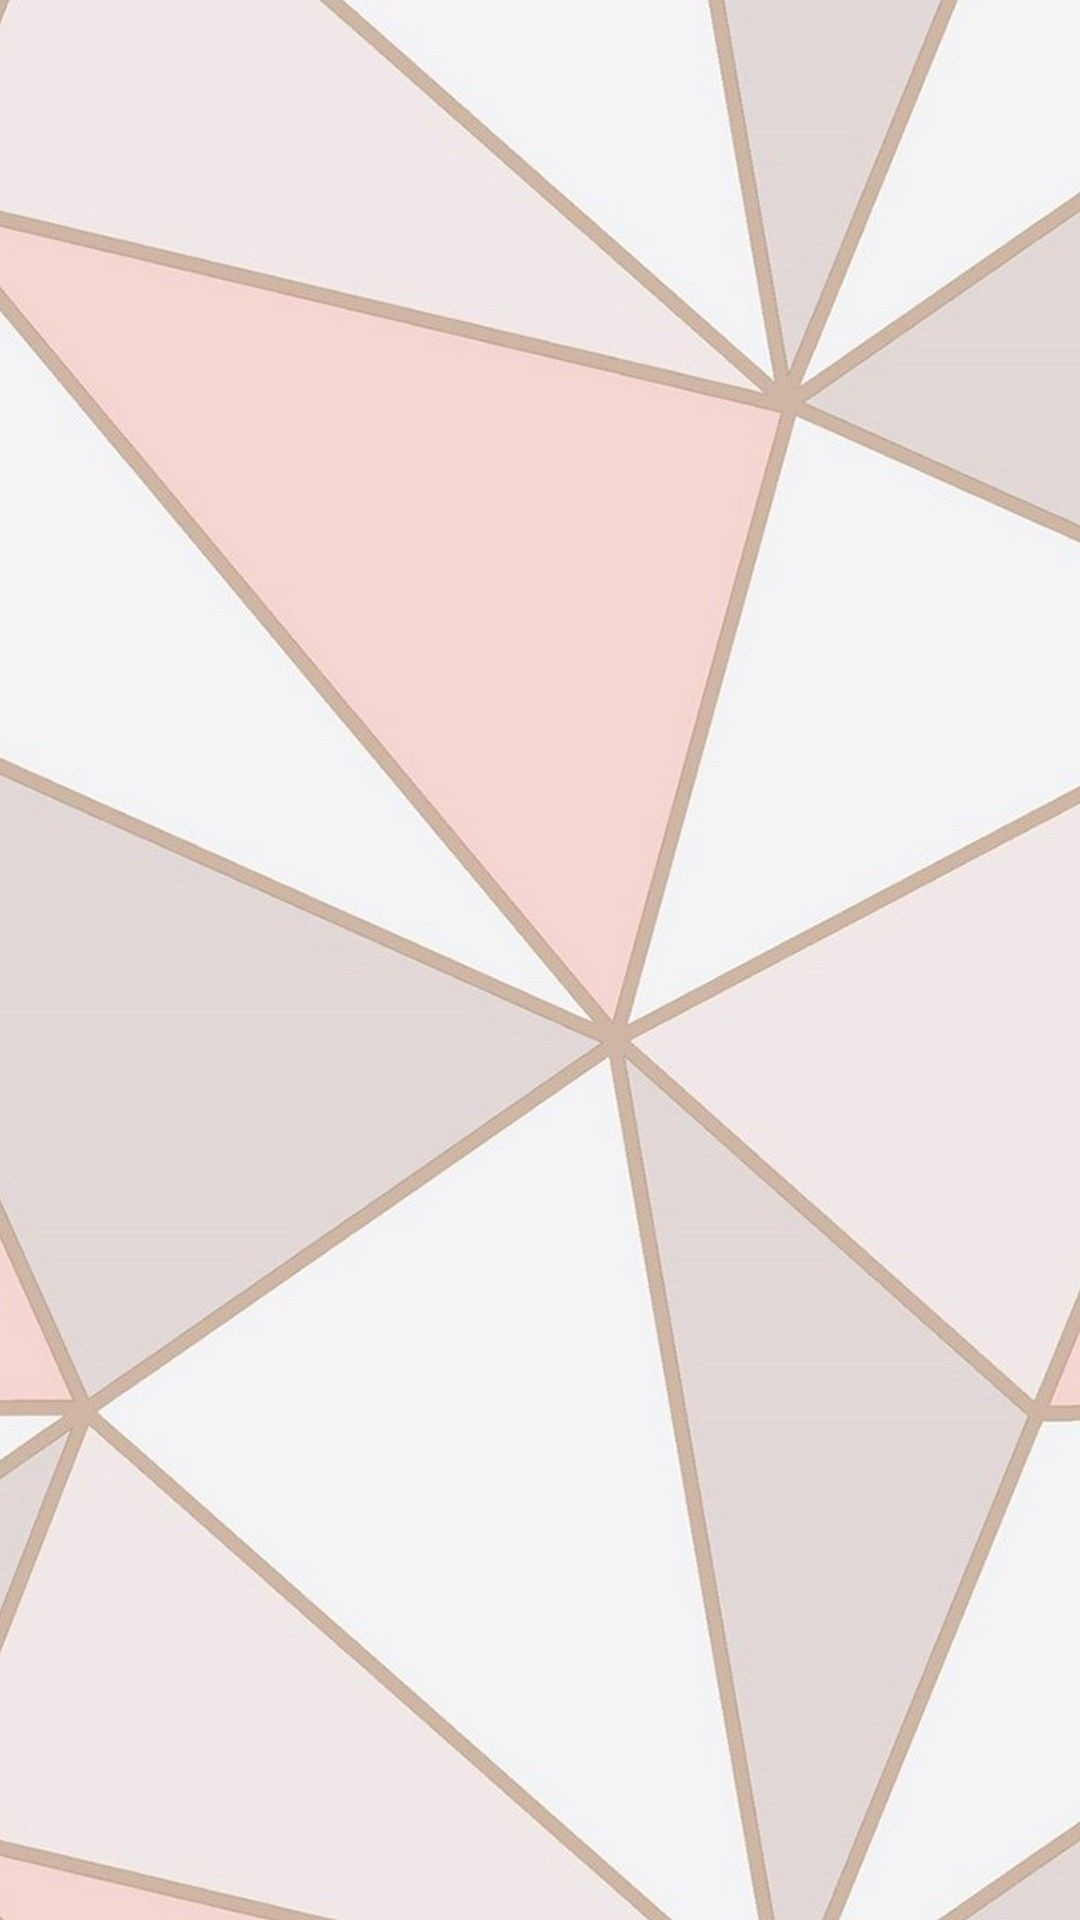 Res: 1080x1920, Android Wallpaper HD Rose Gold Marble - 2018 Android Wallpapers